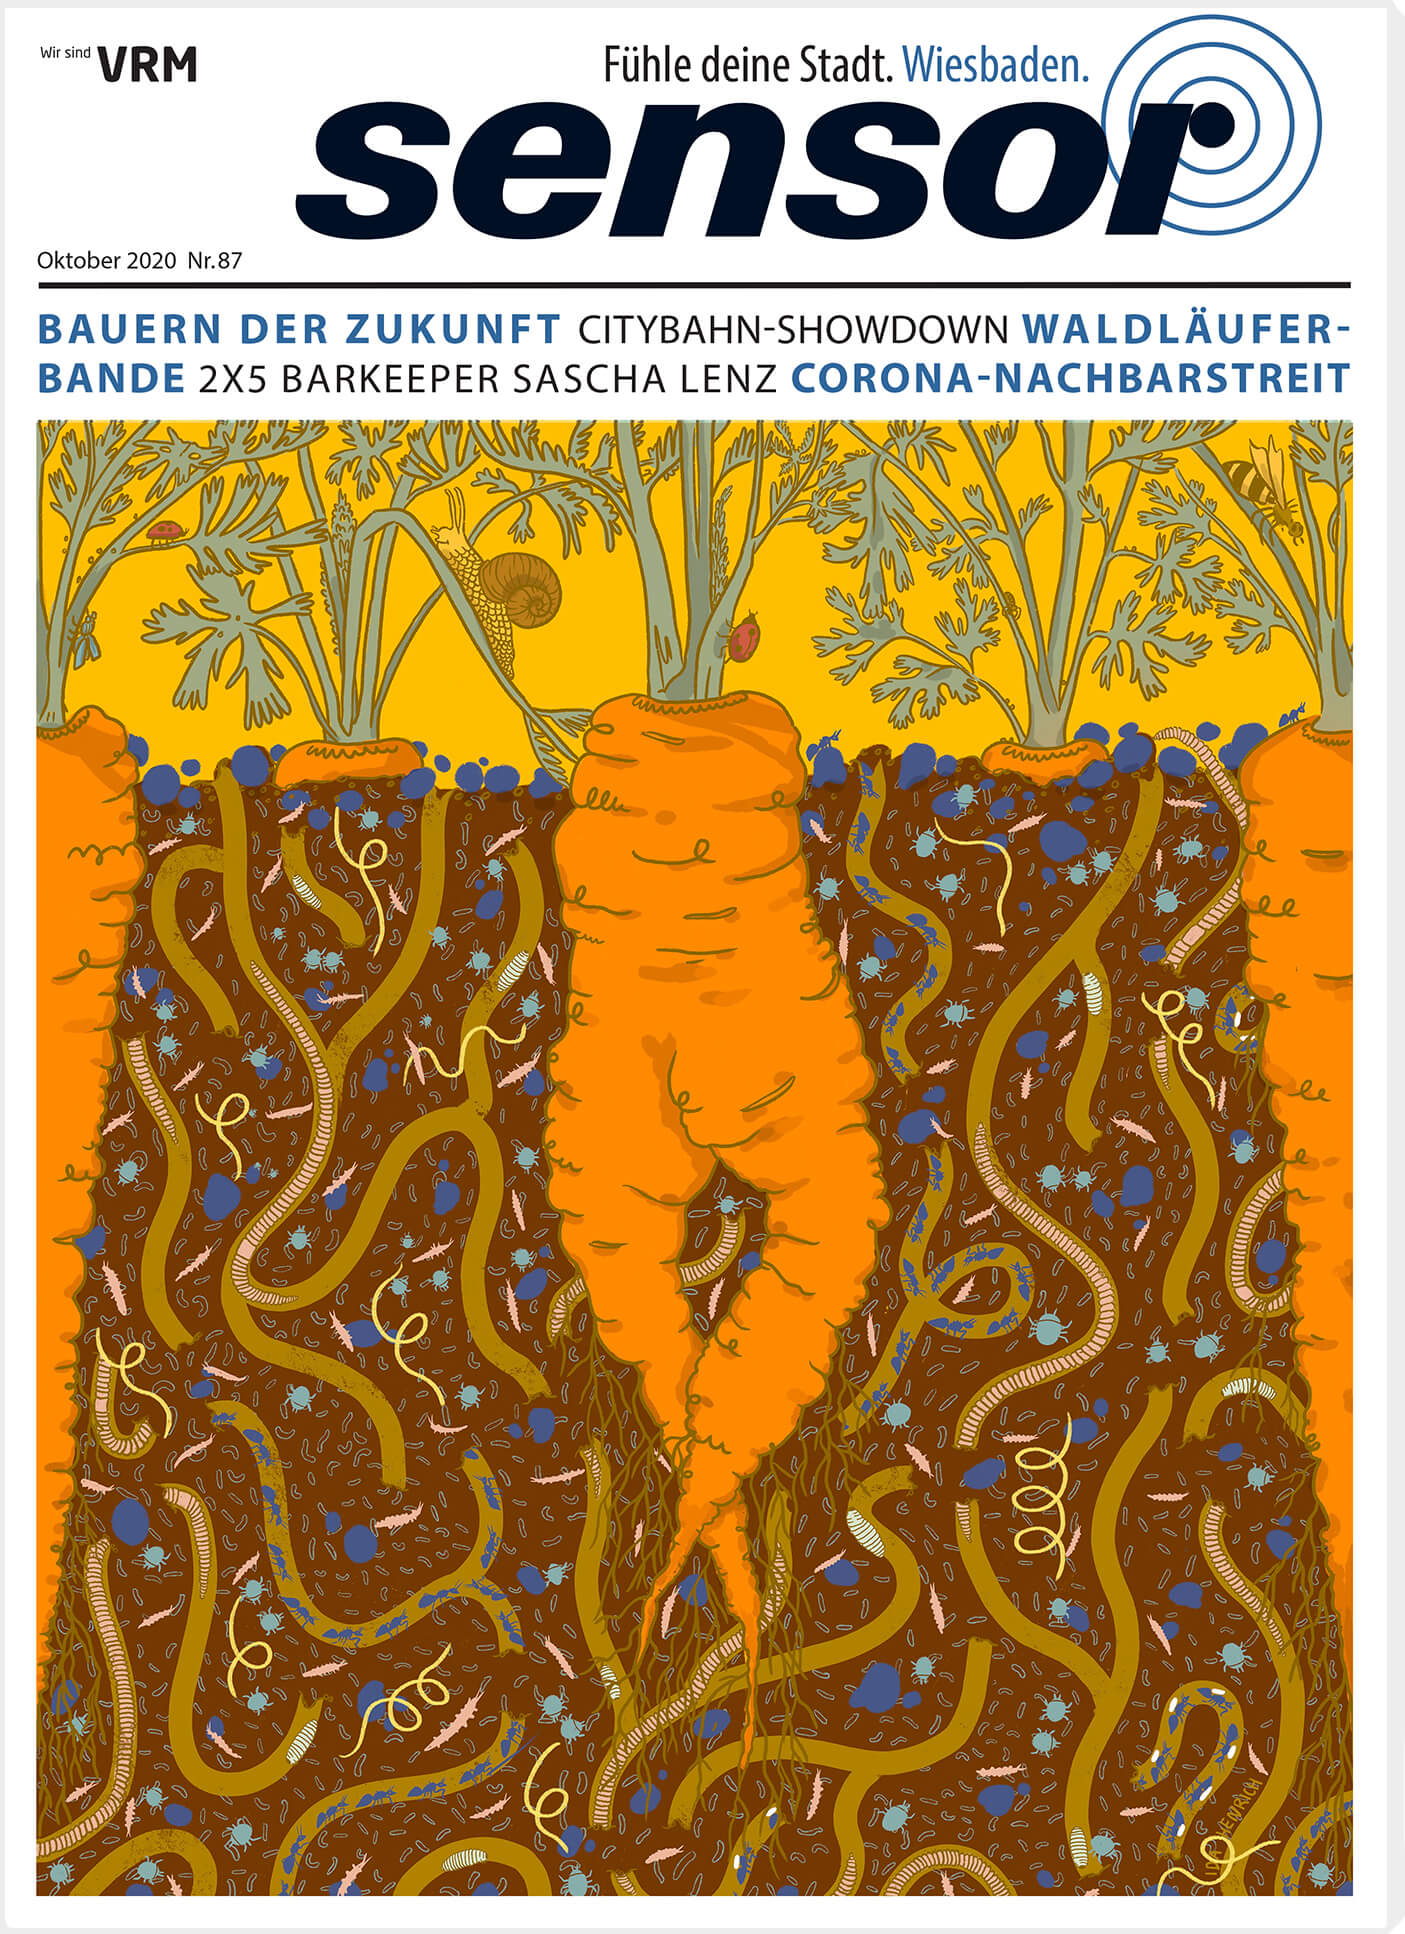 Images a magazine cover with a carrot surrounded by bugs, slugs, worms and smaller organisms.